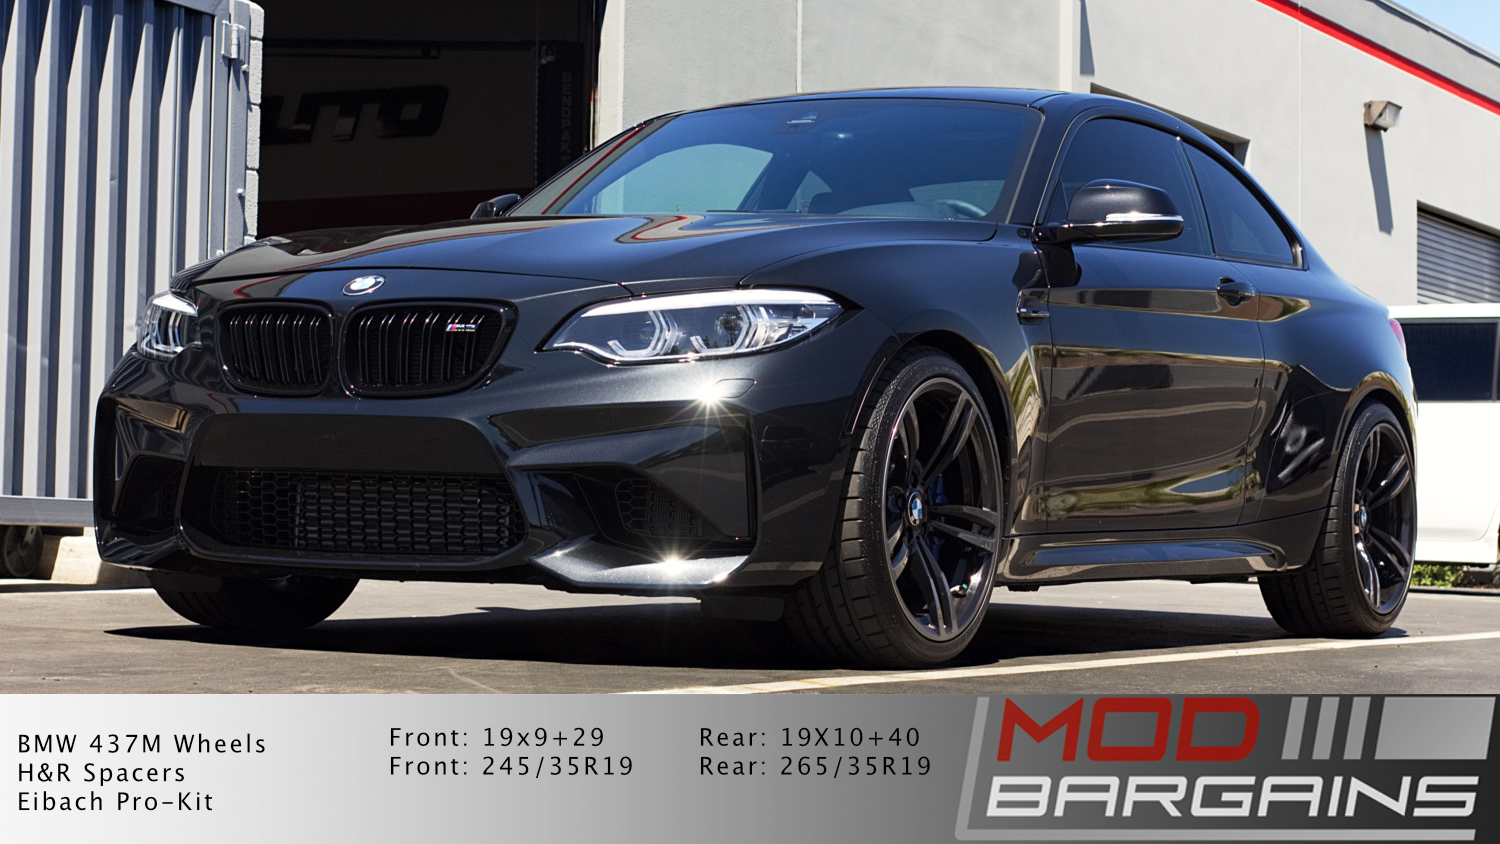 BMW M2 on lowering springs and spacers front view, lower m2